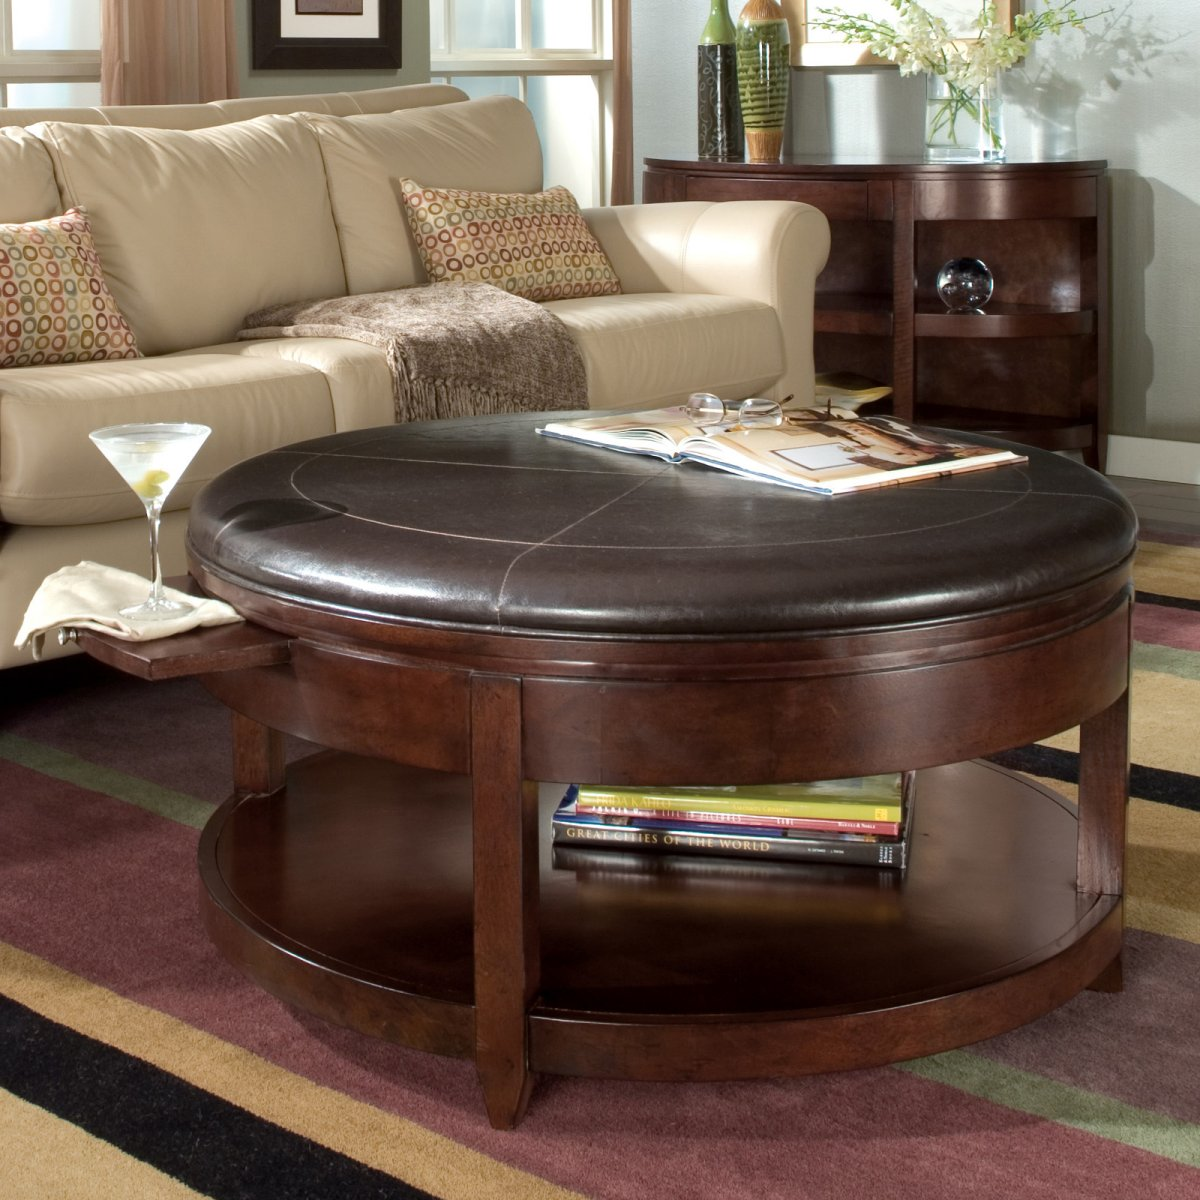 Enjoyable Awesome Round Coffee Tables With Storage Homesfeed Dailytribune Chair Design For Home Dailytribuneorg